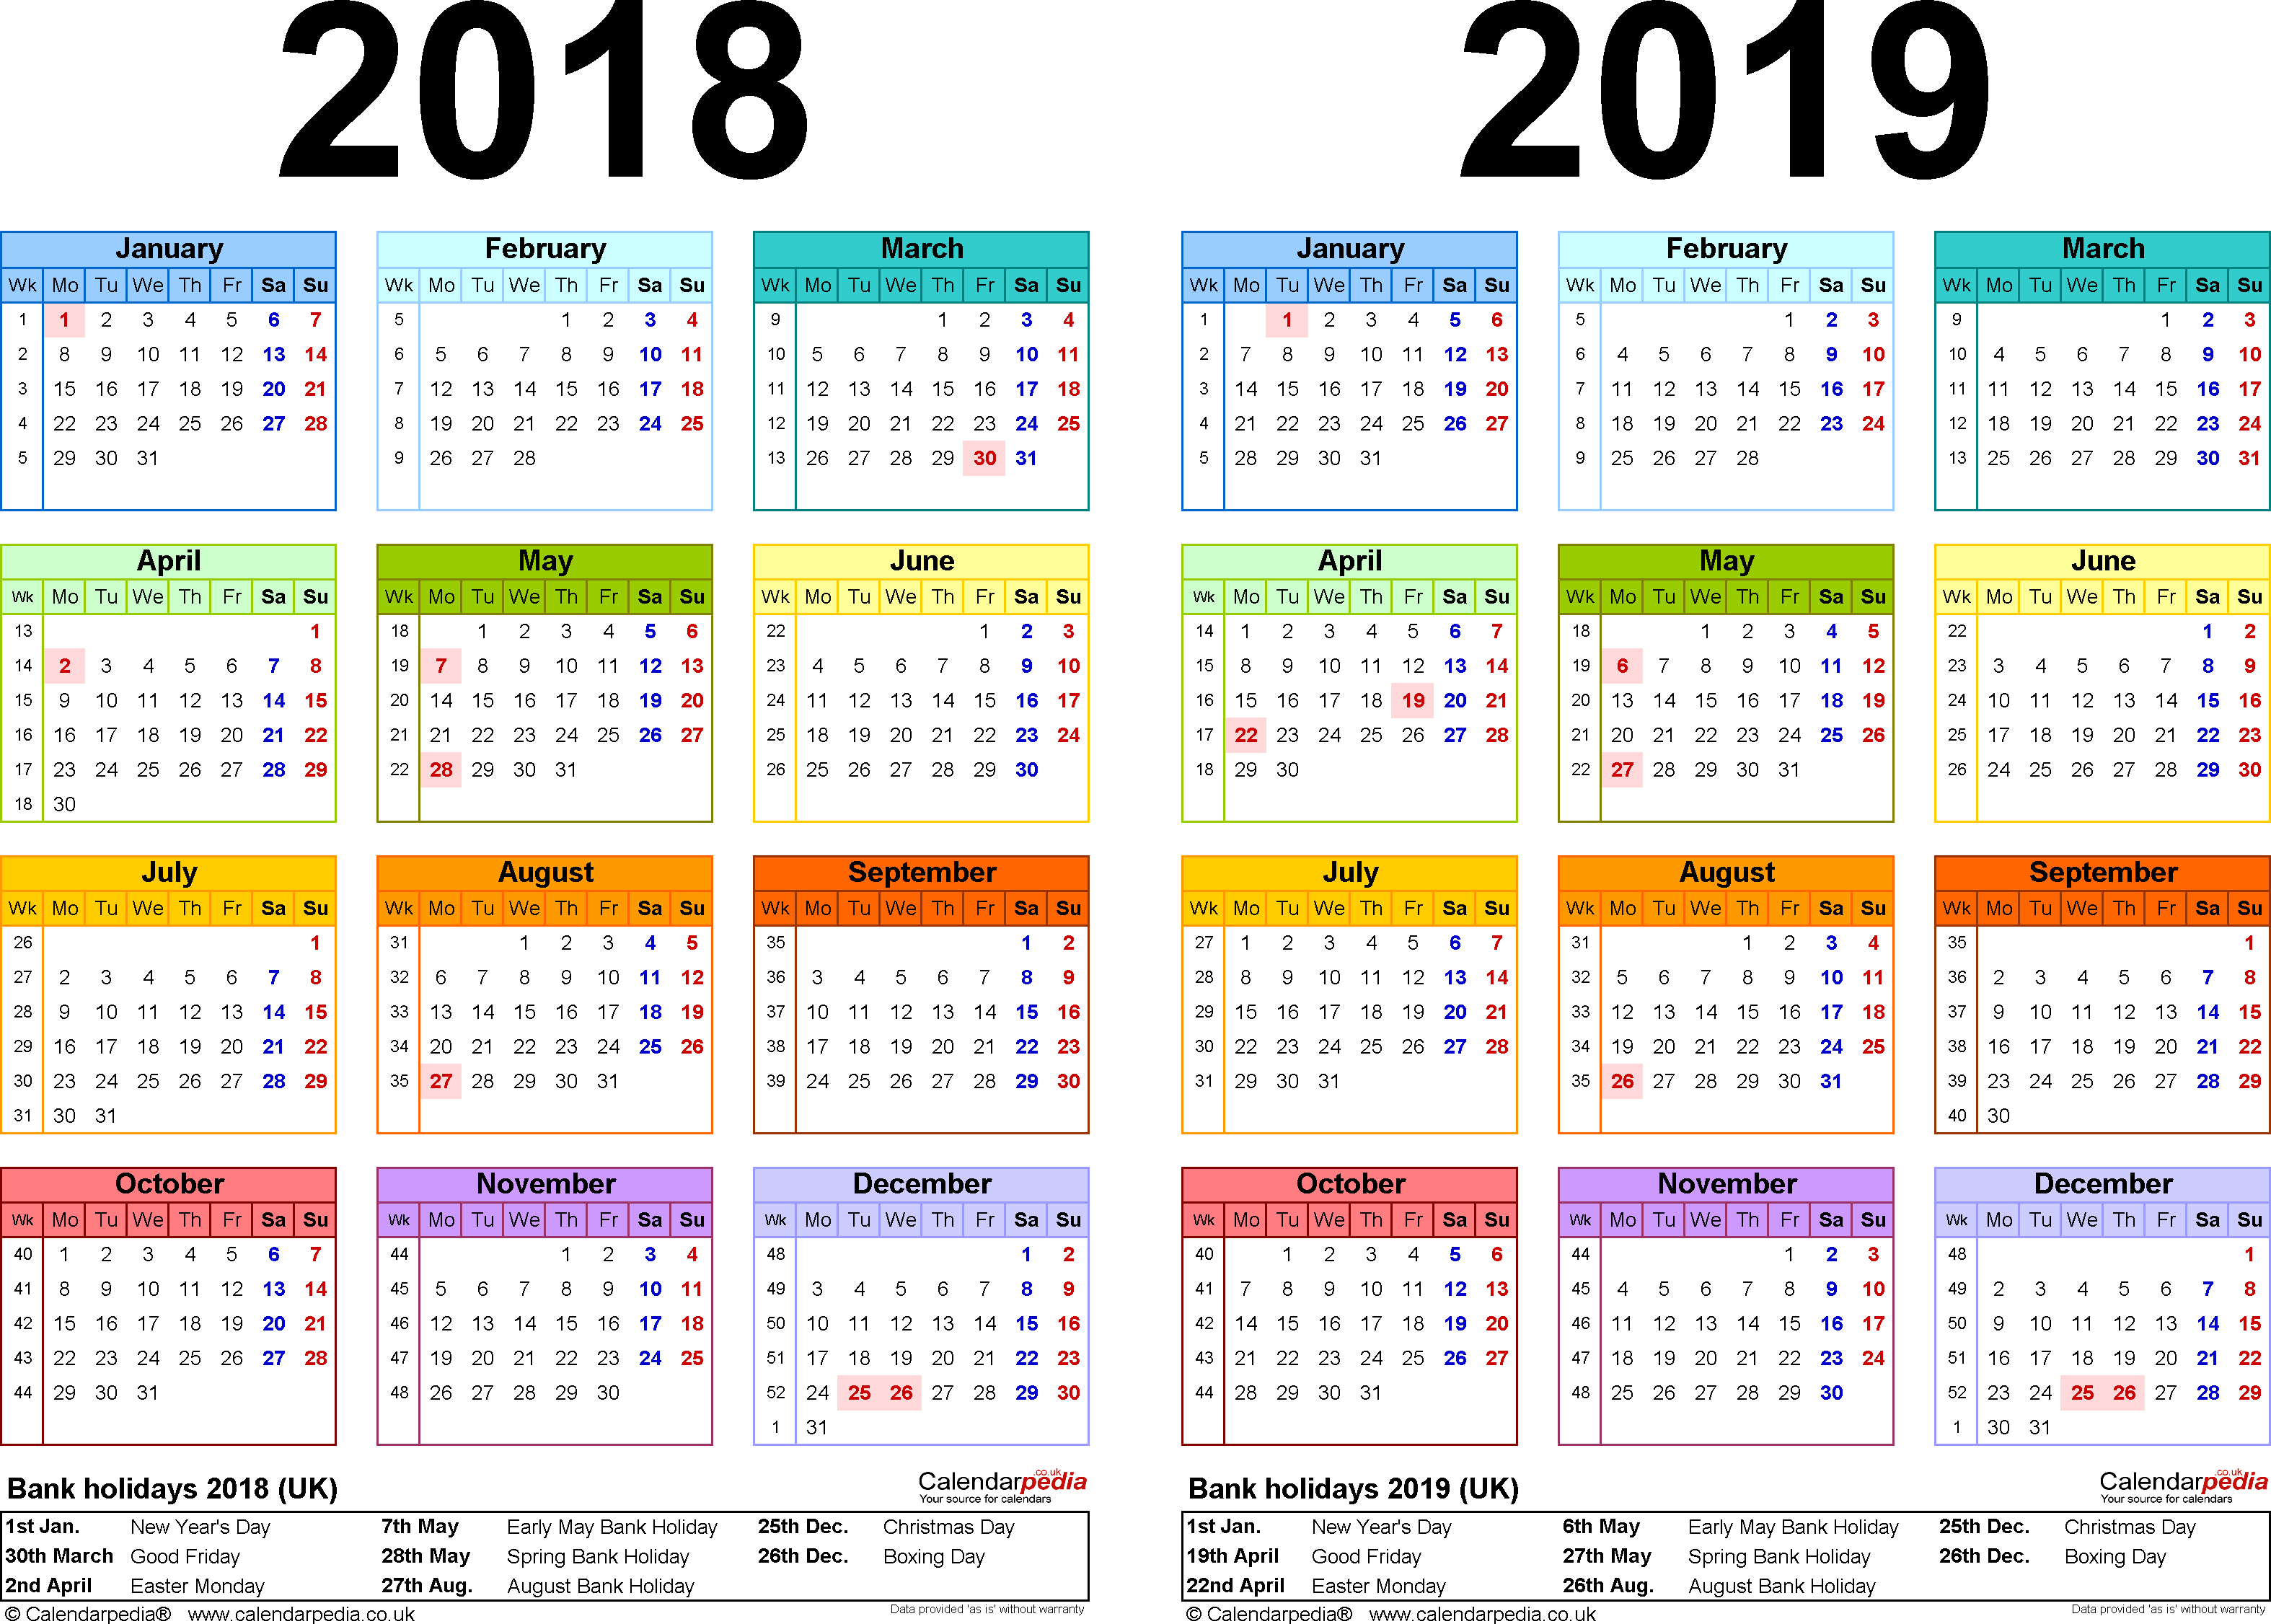 Next Year Calendar 2019 India With Two Calendars For 2018 UK Excel